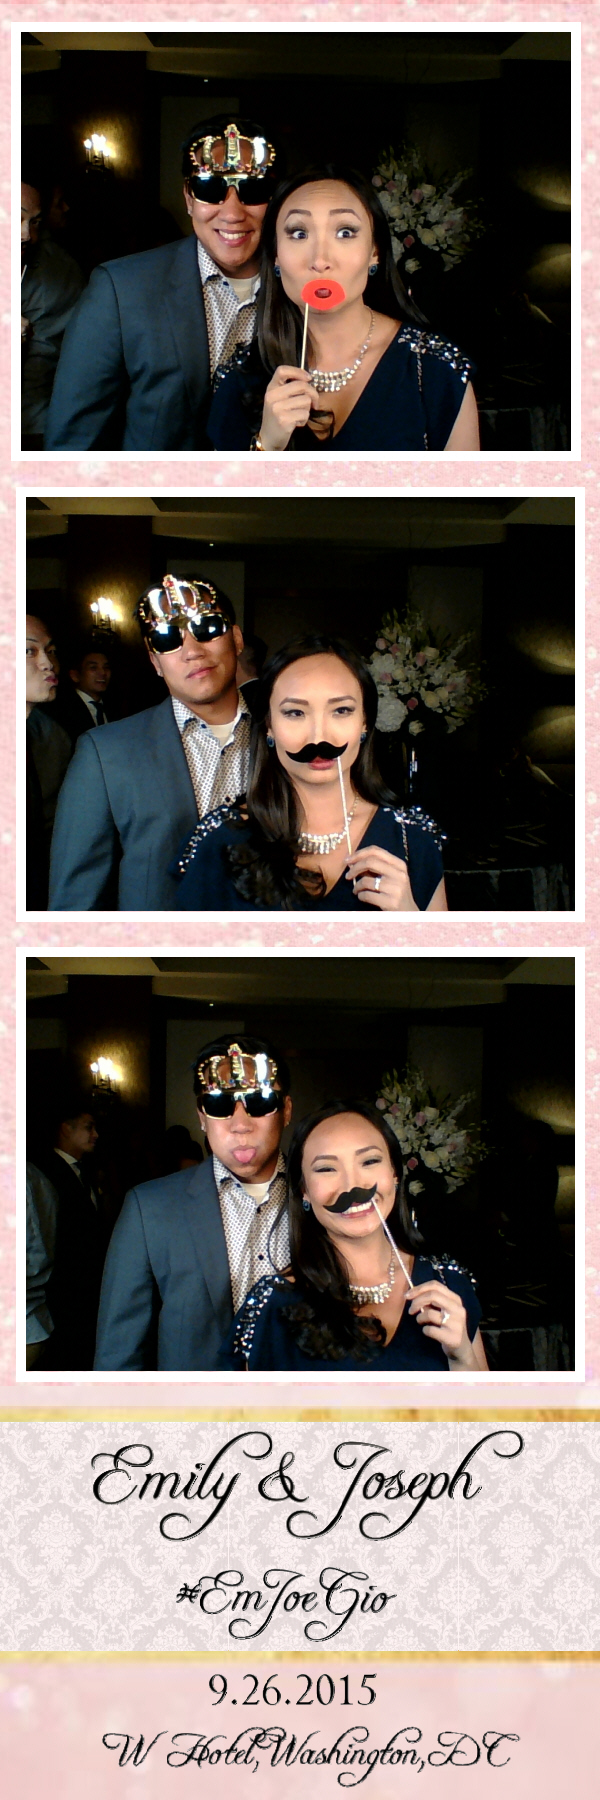 Guest House Events Photo Booth E&J (63).jpg